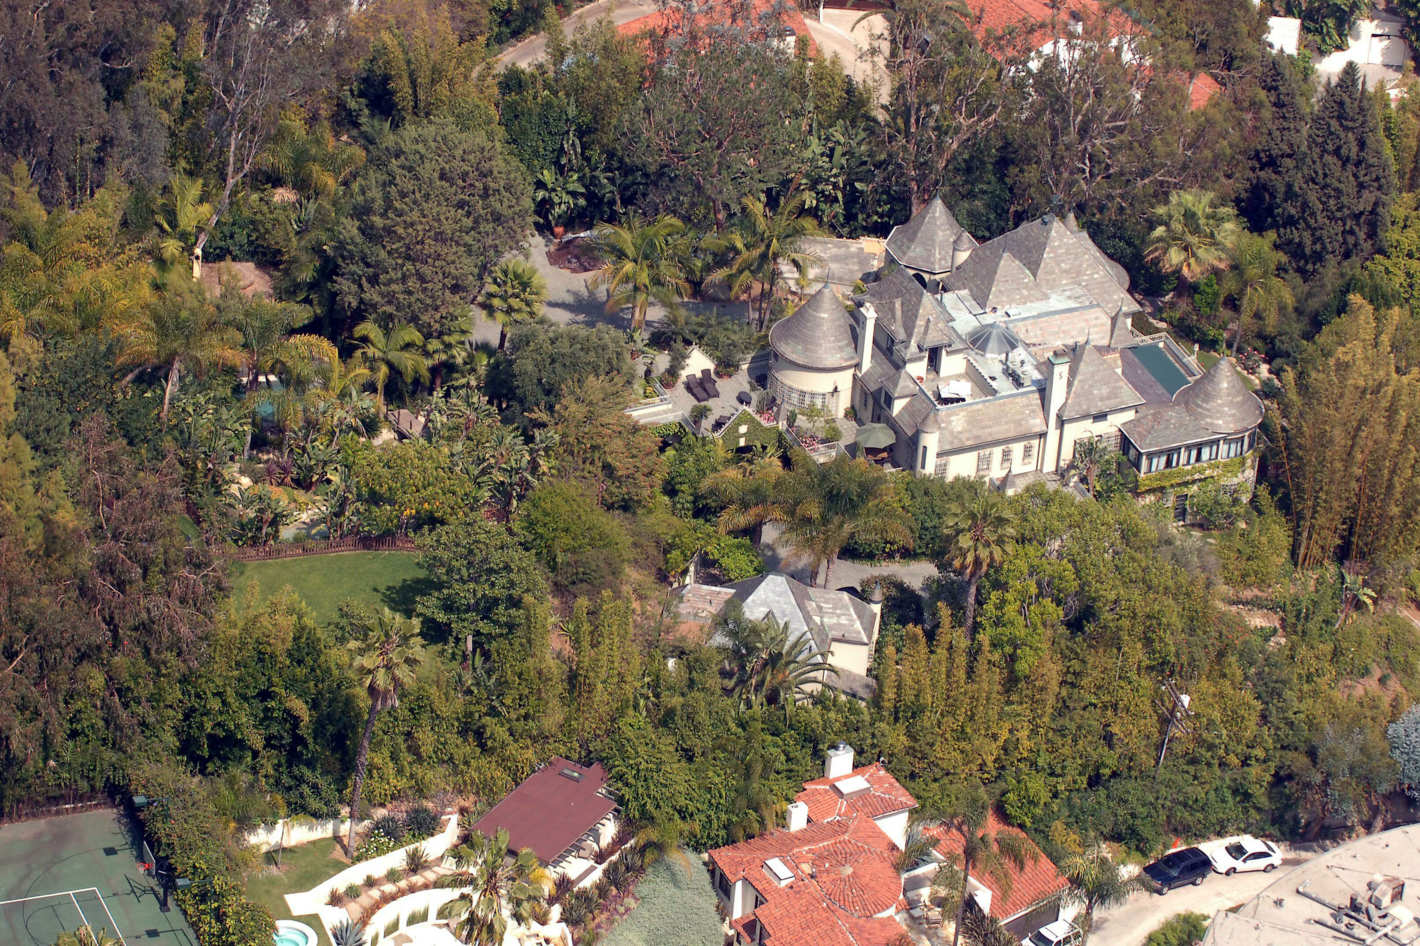 Johnny Depp's Hollywood home